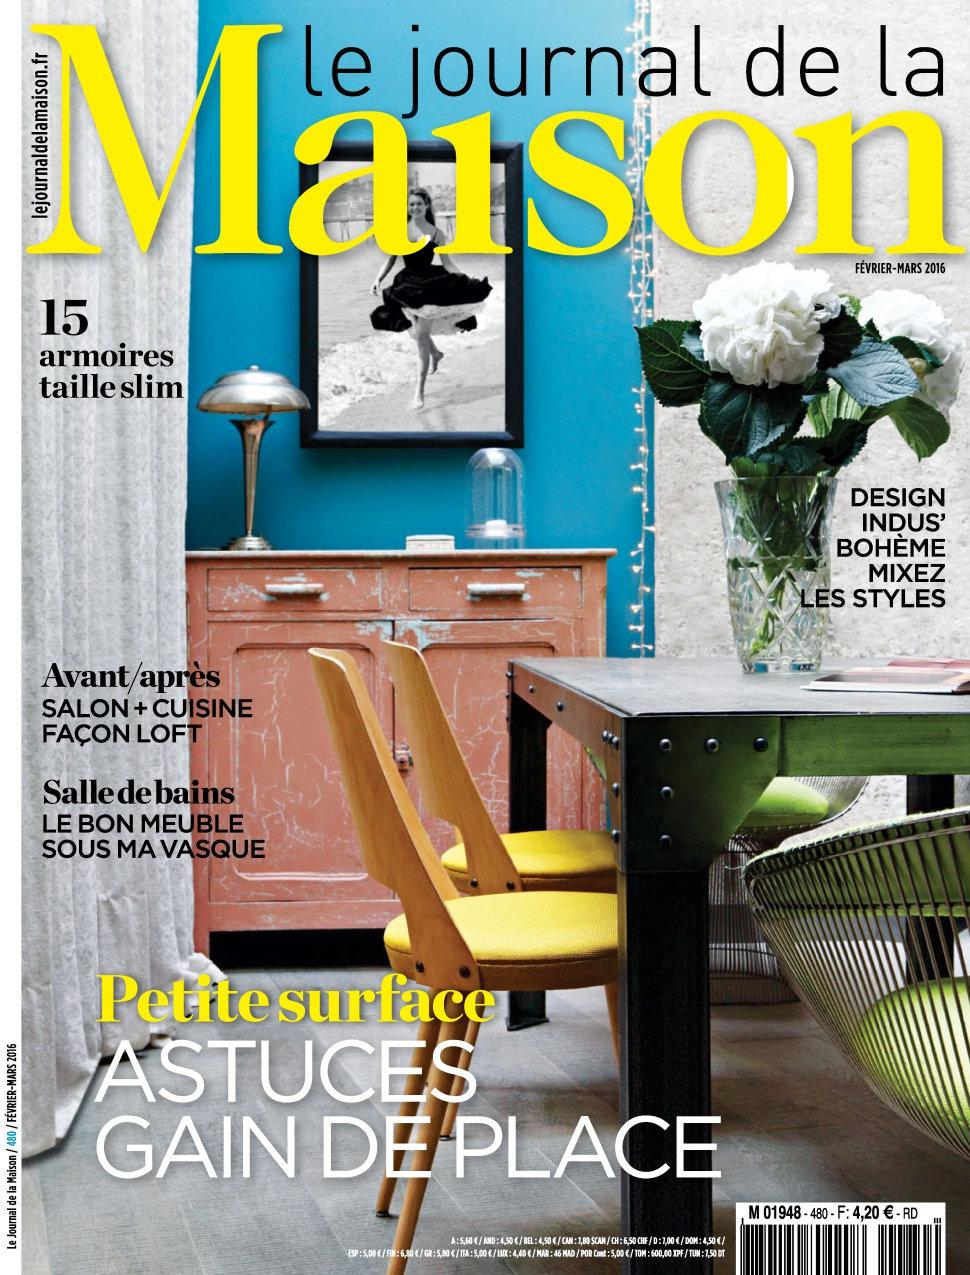 Le journal de la maison n 480 fevrier mars 2016 telecharger - Journal de la maison ...